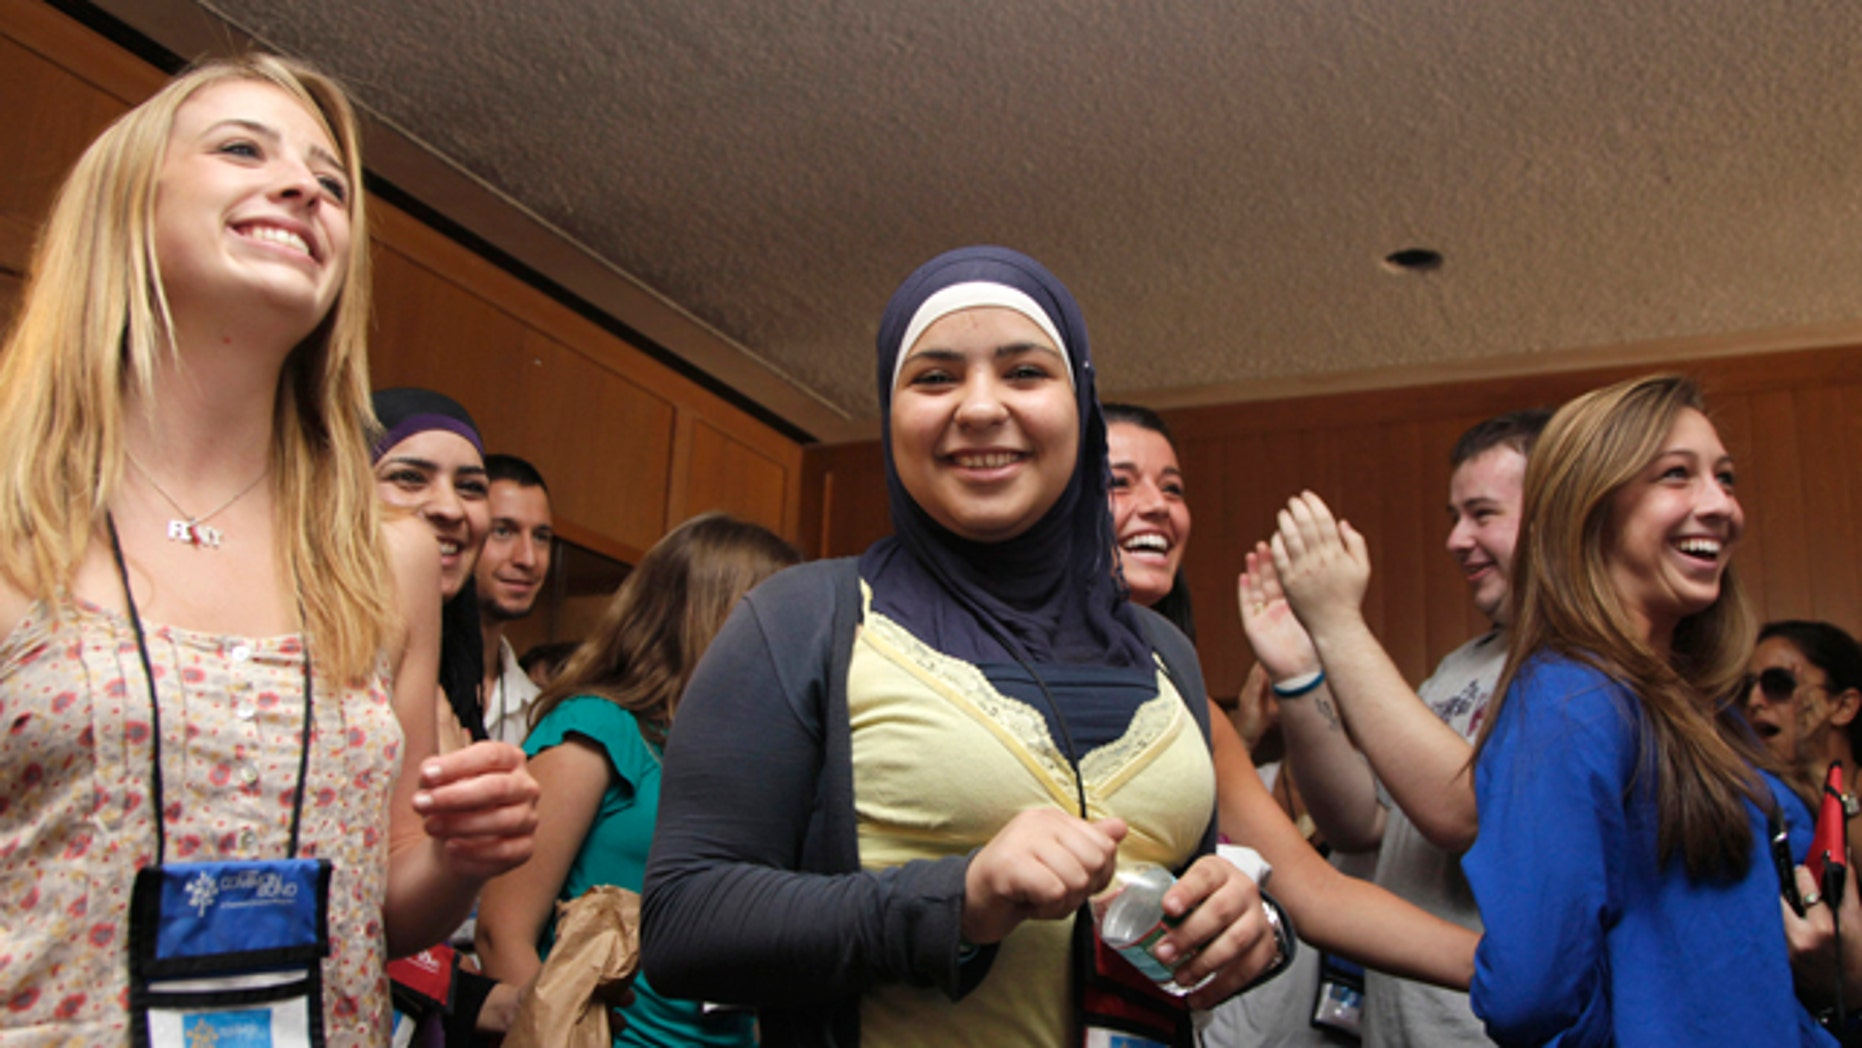 July 27: From left, Caitlin Leavey, of New York, Farrah Sarrawi of Palestine, Francesca Picerno of the US, and Allison Stahlman, are applauded during Project Common Bond on the Foxcroft School campus in Middleburg, Va. Project Common Bond brings together offspring of 9/11 victims with other teens who have lost family members to acts of terror around the world.